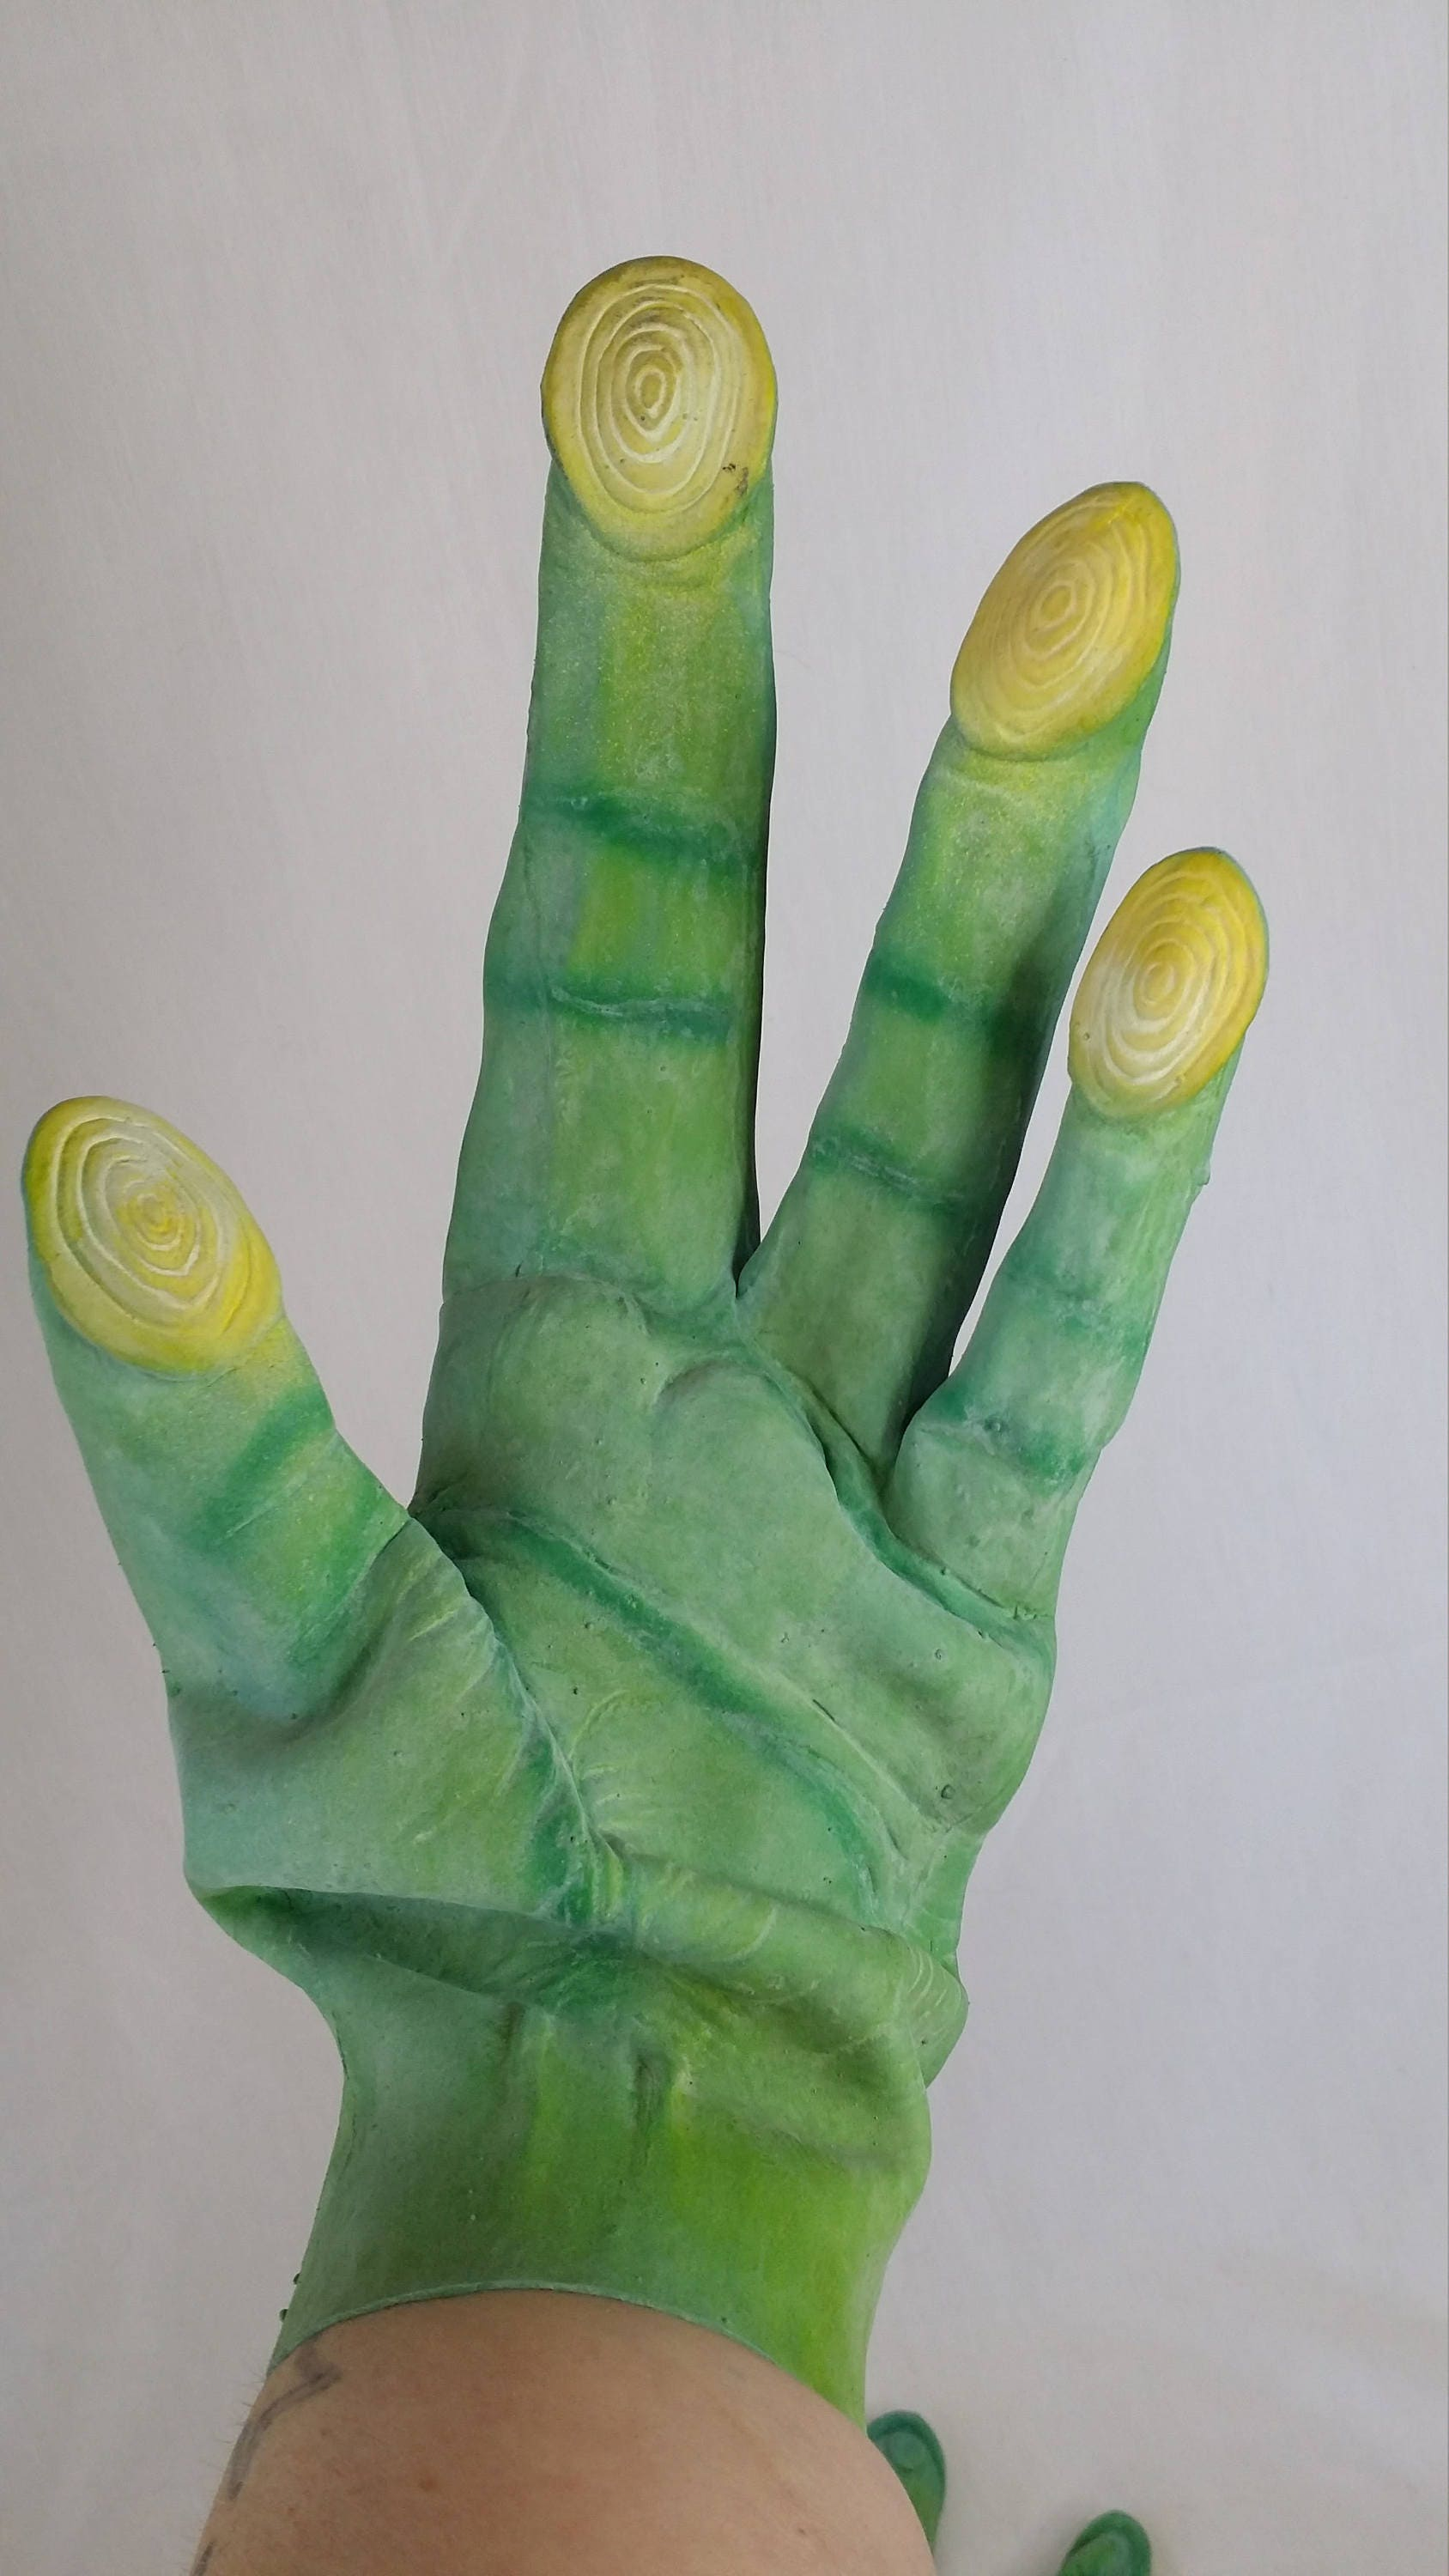 Wicked Adult Sized Green Alien Martian Latex/Rubber Gloves ~ 4 Fingers ~  Set of Gloves ~ Halloween Costume Gloves ~ Cosplay